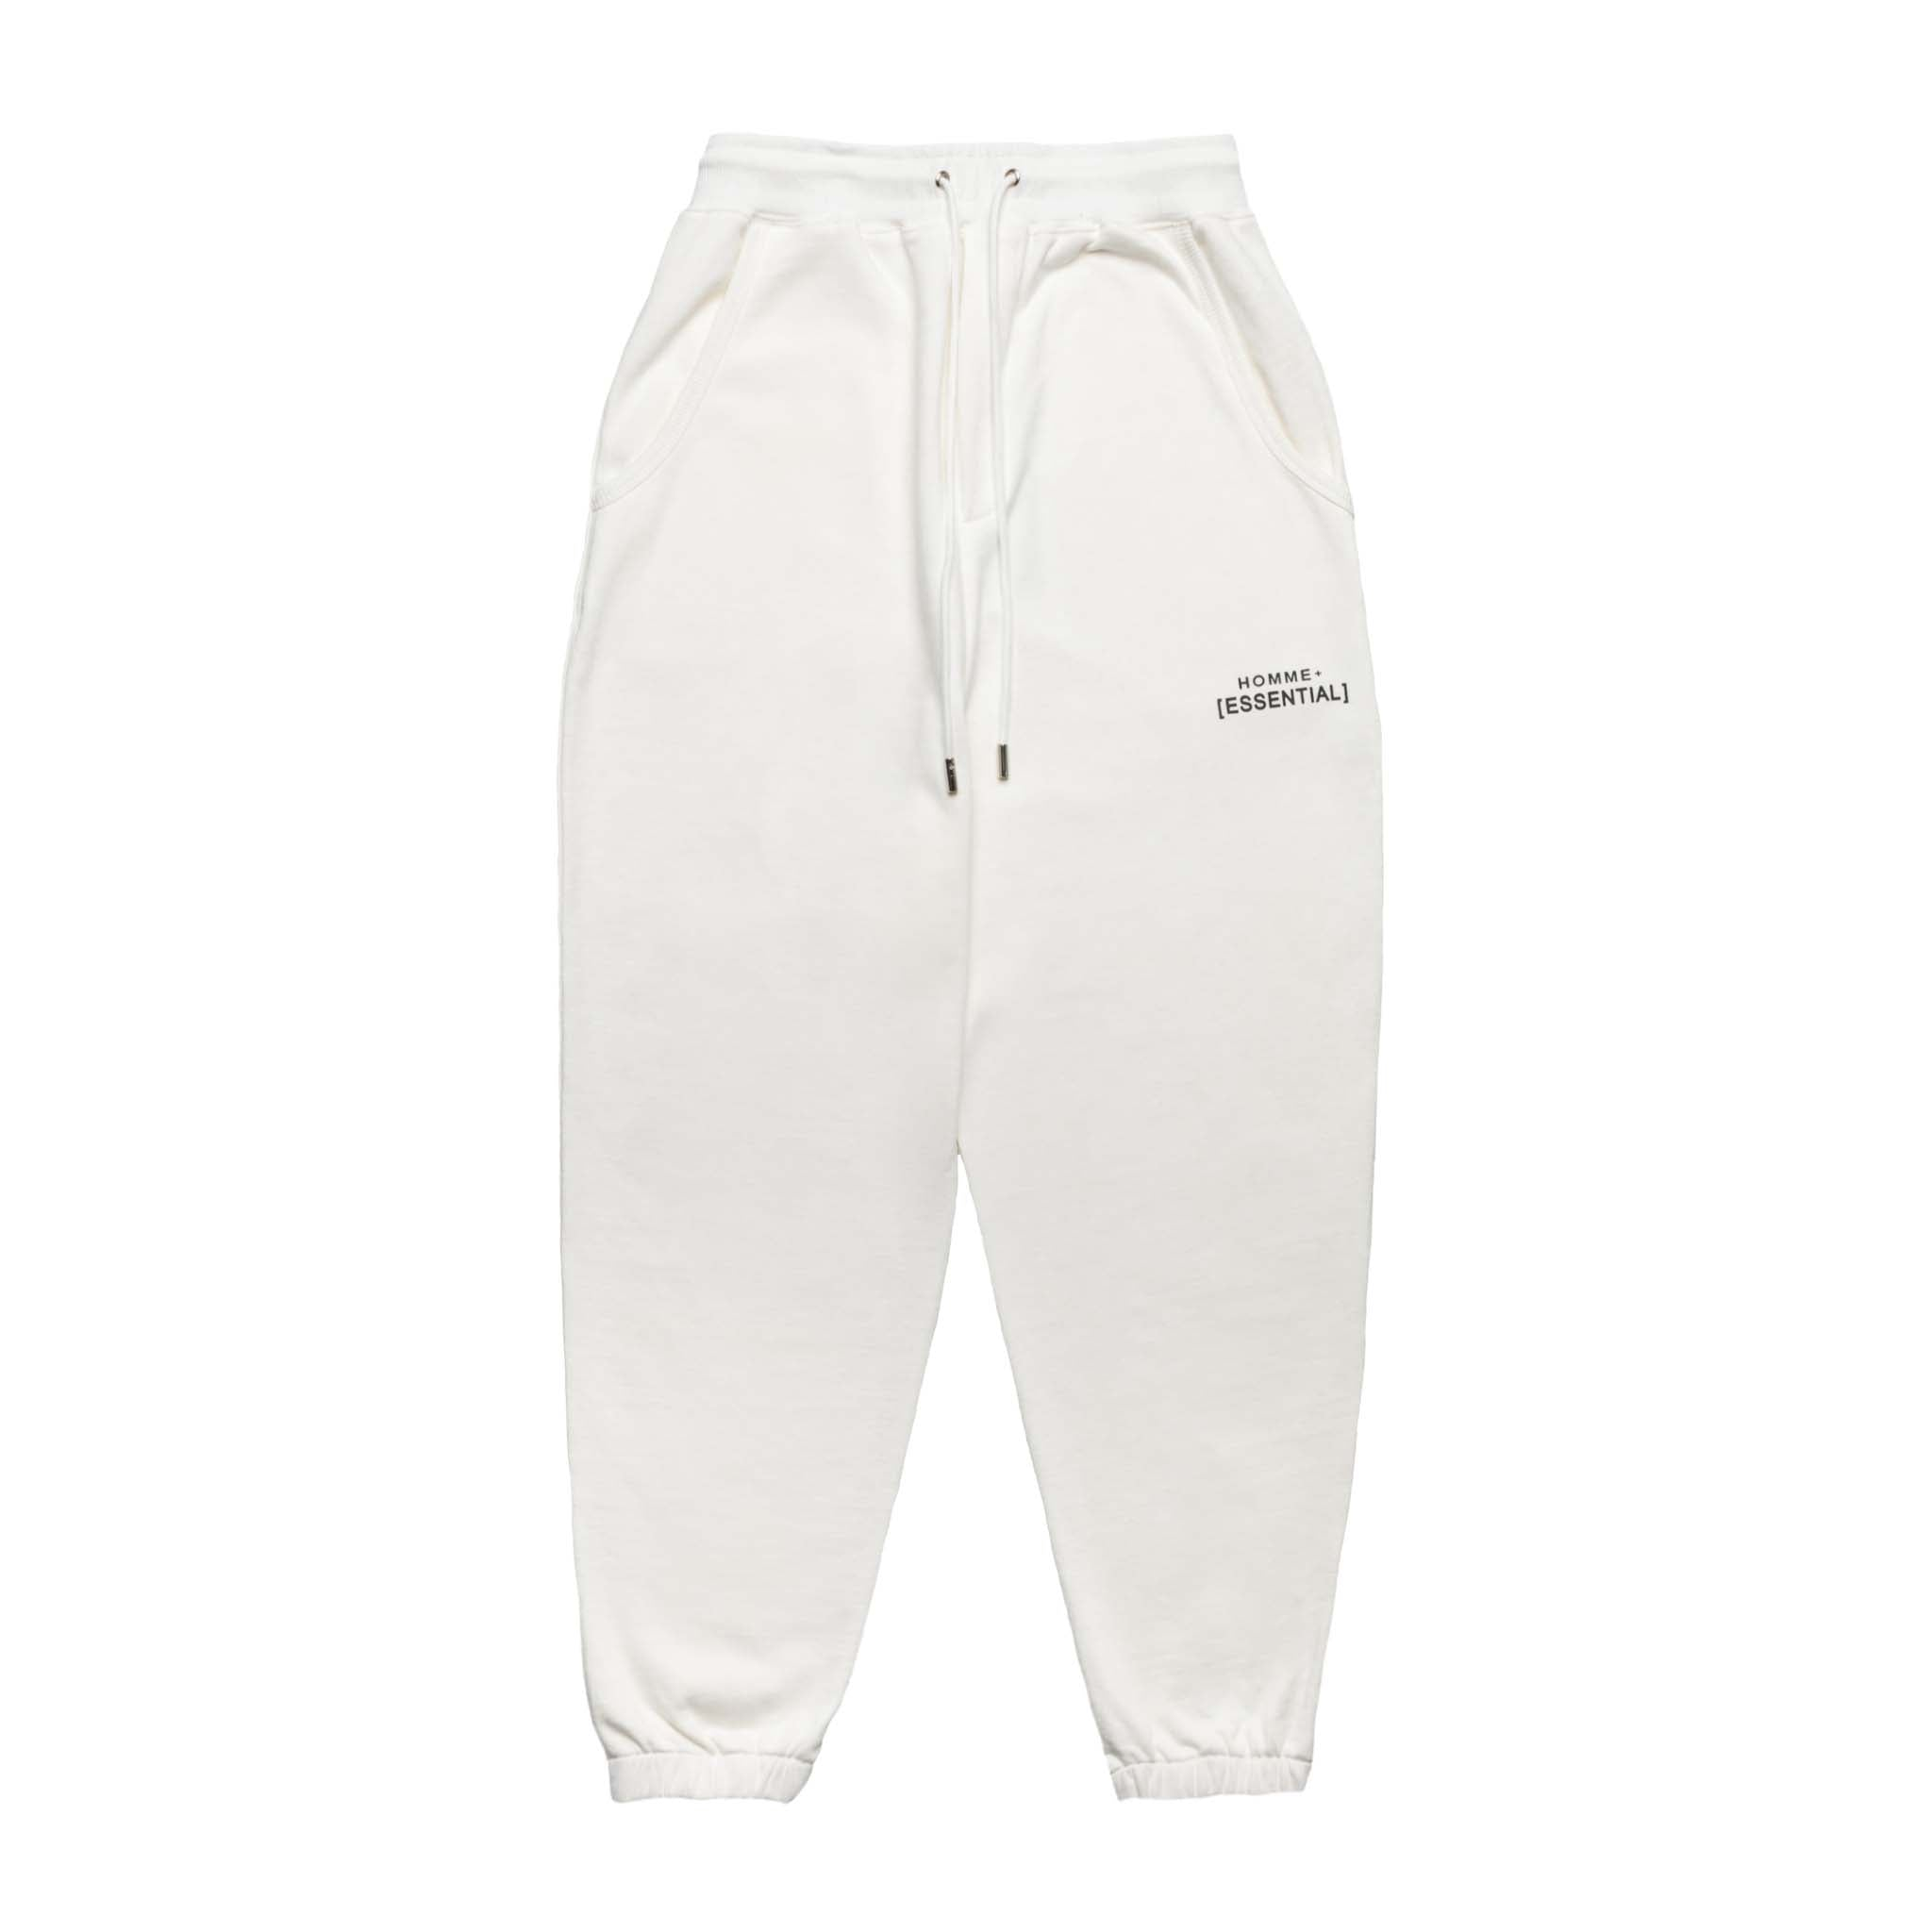 HOMME+ 'ESSENTIAL' Knit Jogger White